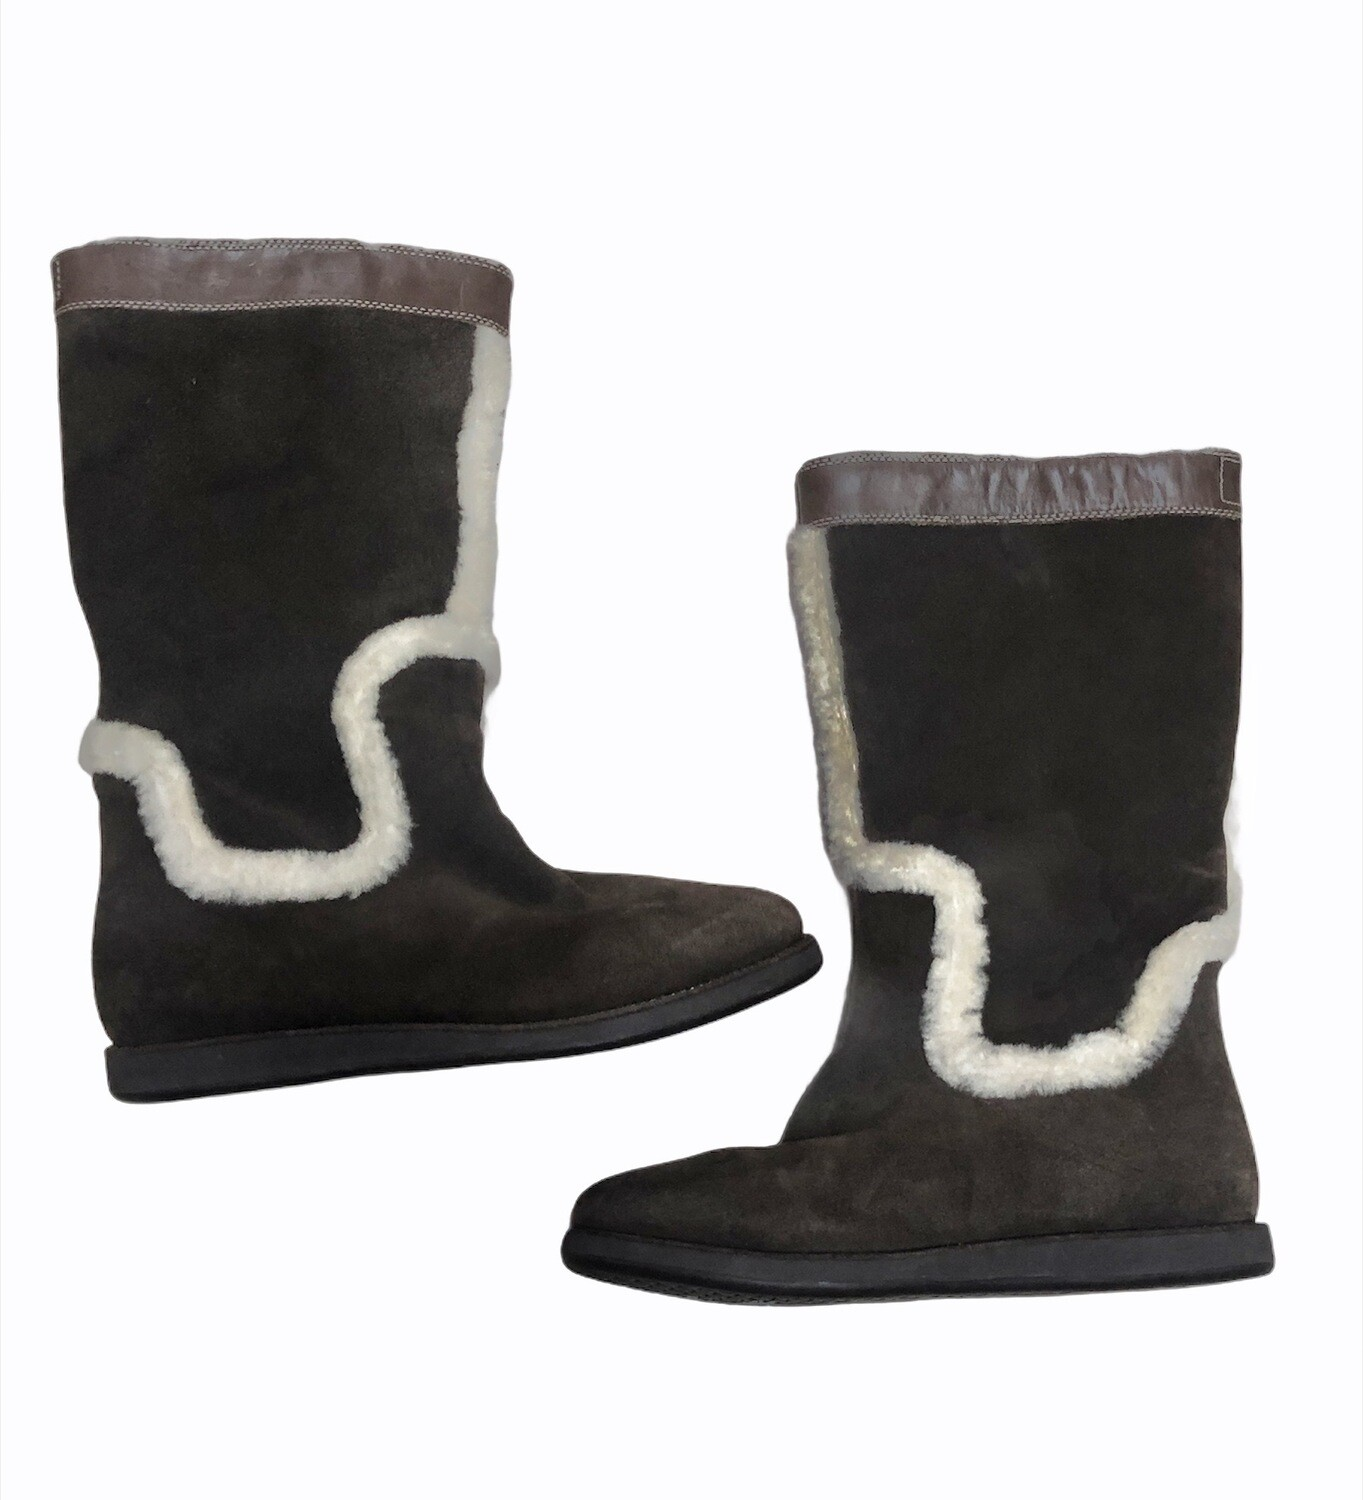 COLE HAAN Nike Air Brown Suede & Shearling Waterproof Boots size 8